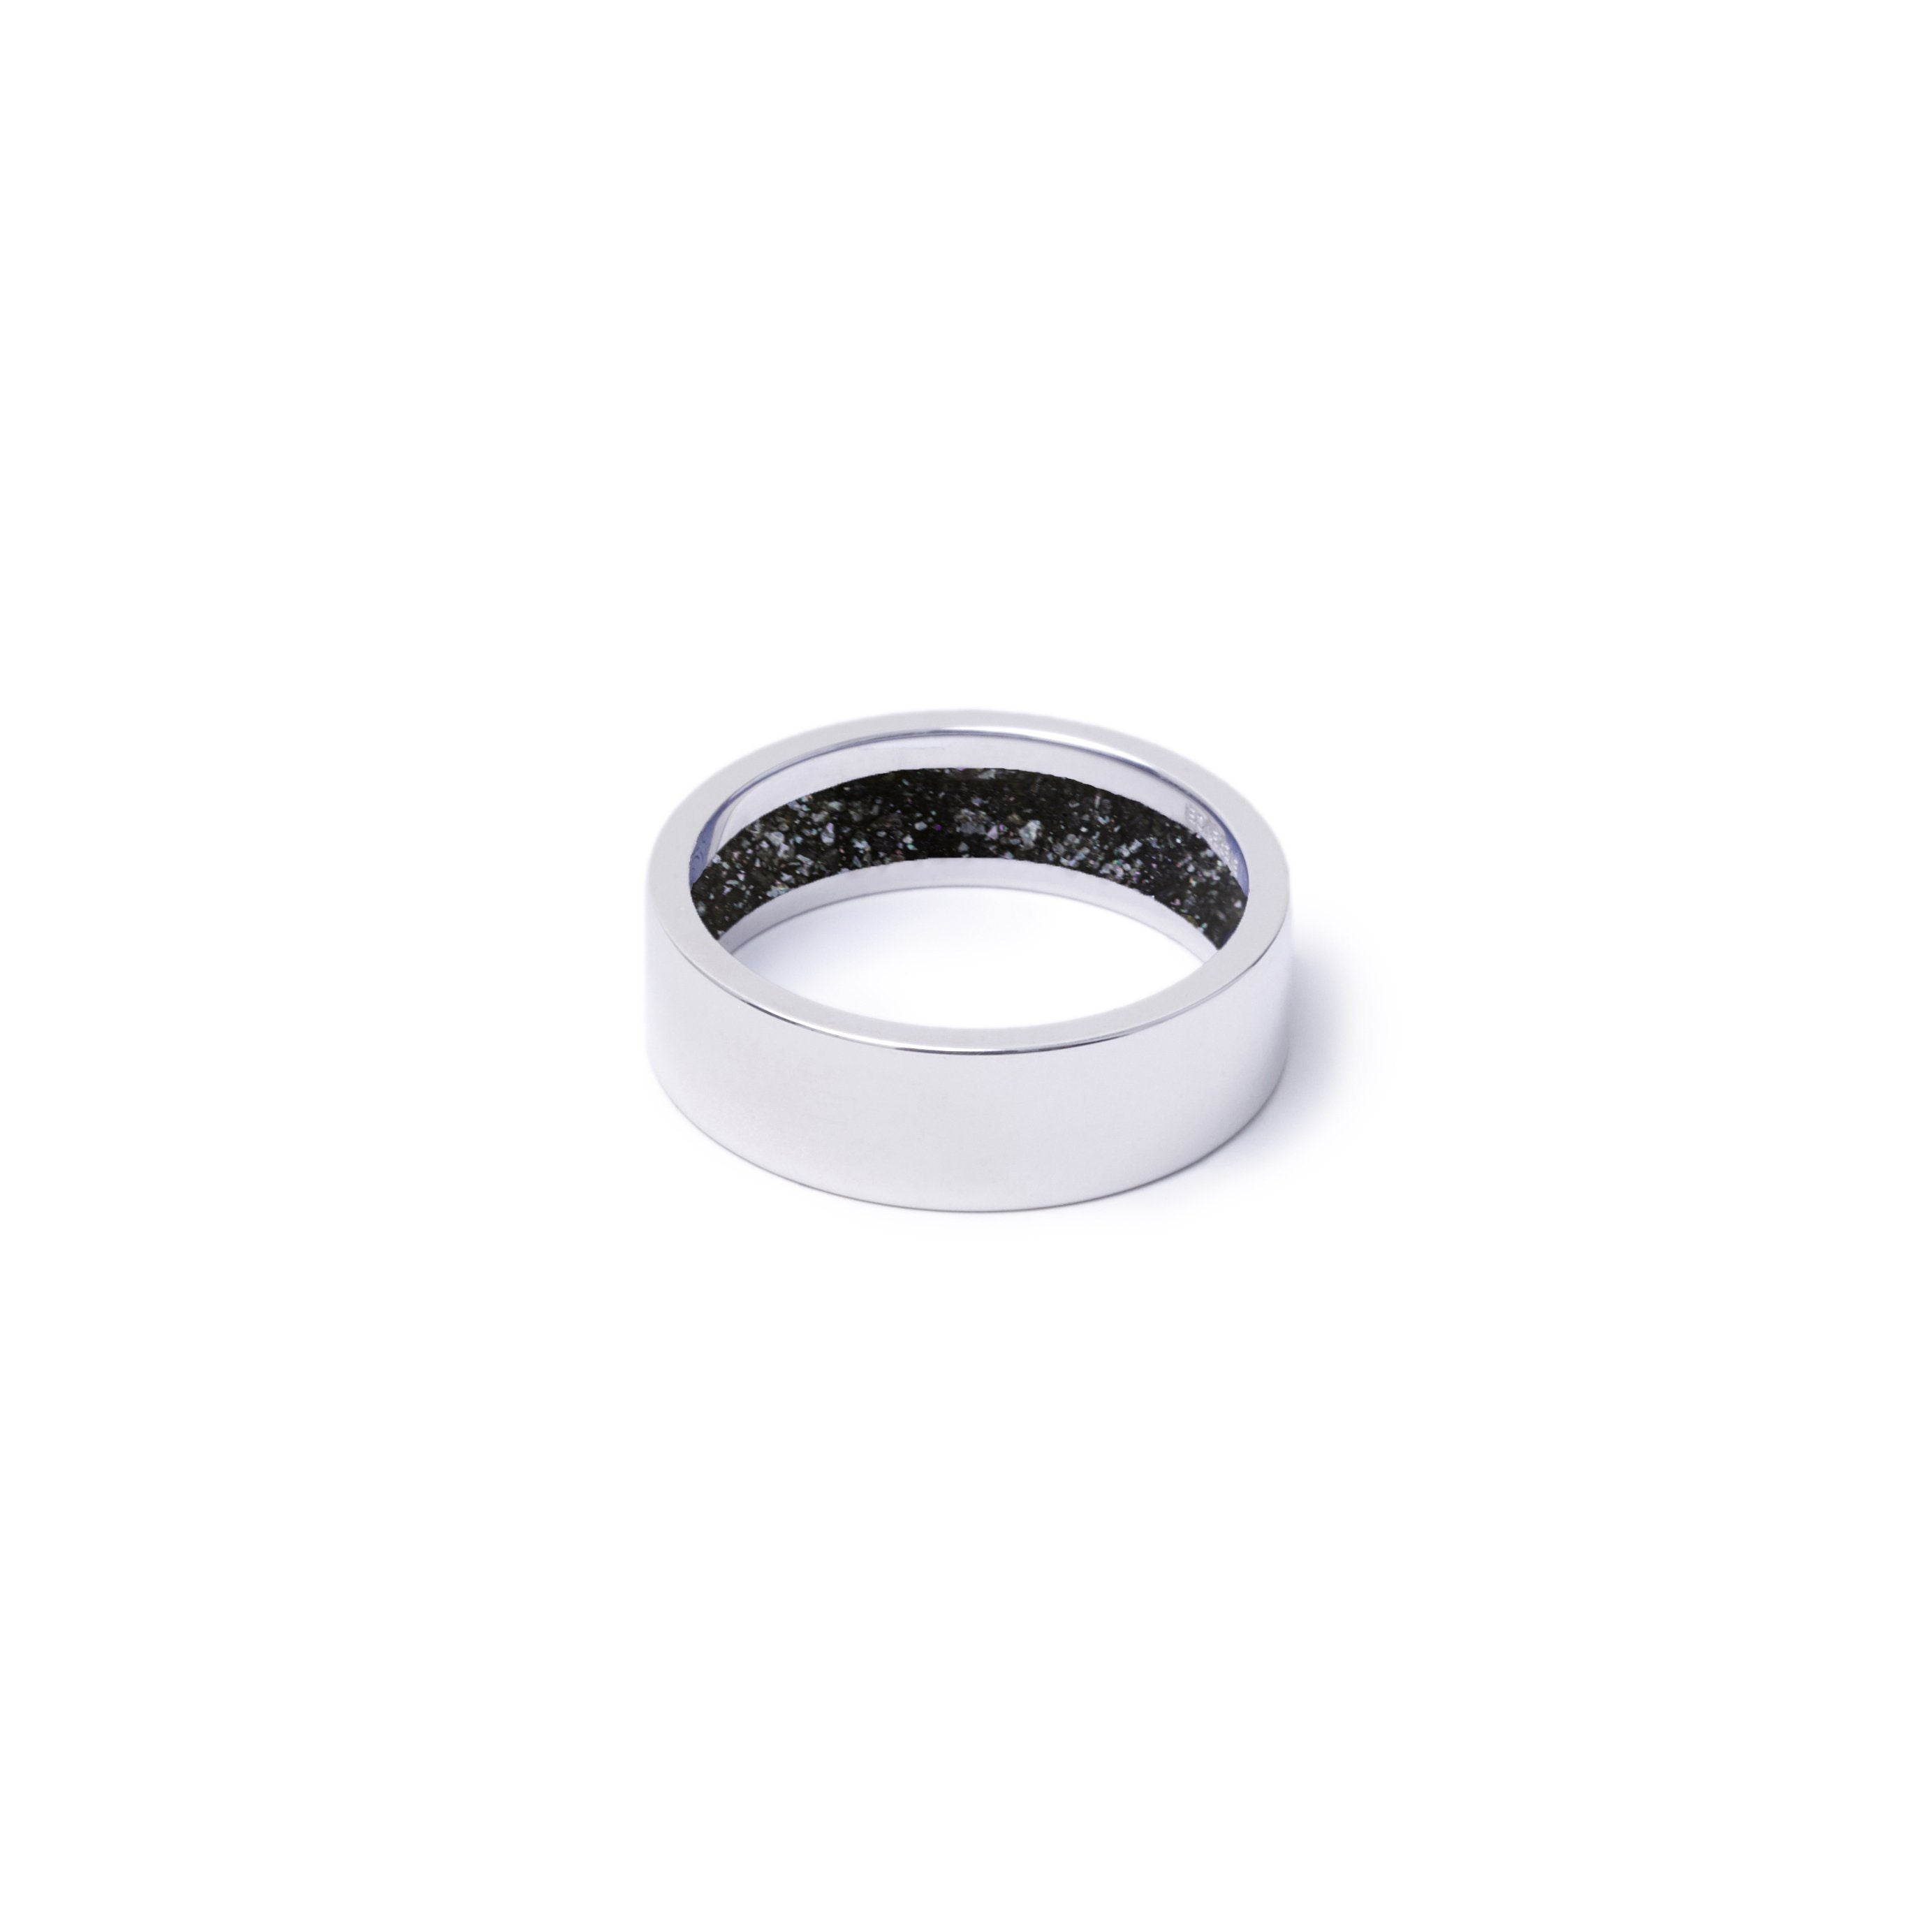 Everence Ring, 10k White Gold everence.life 6mm Charcoal